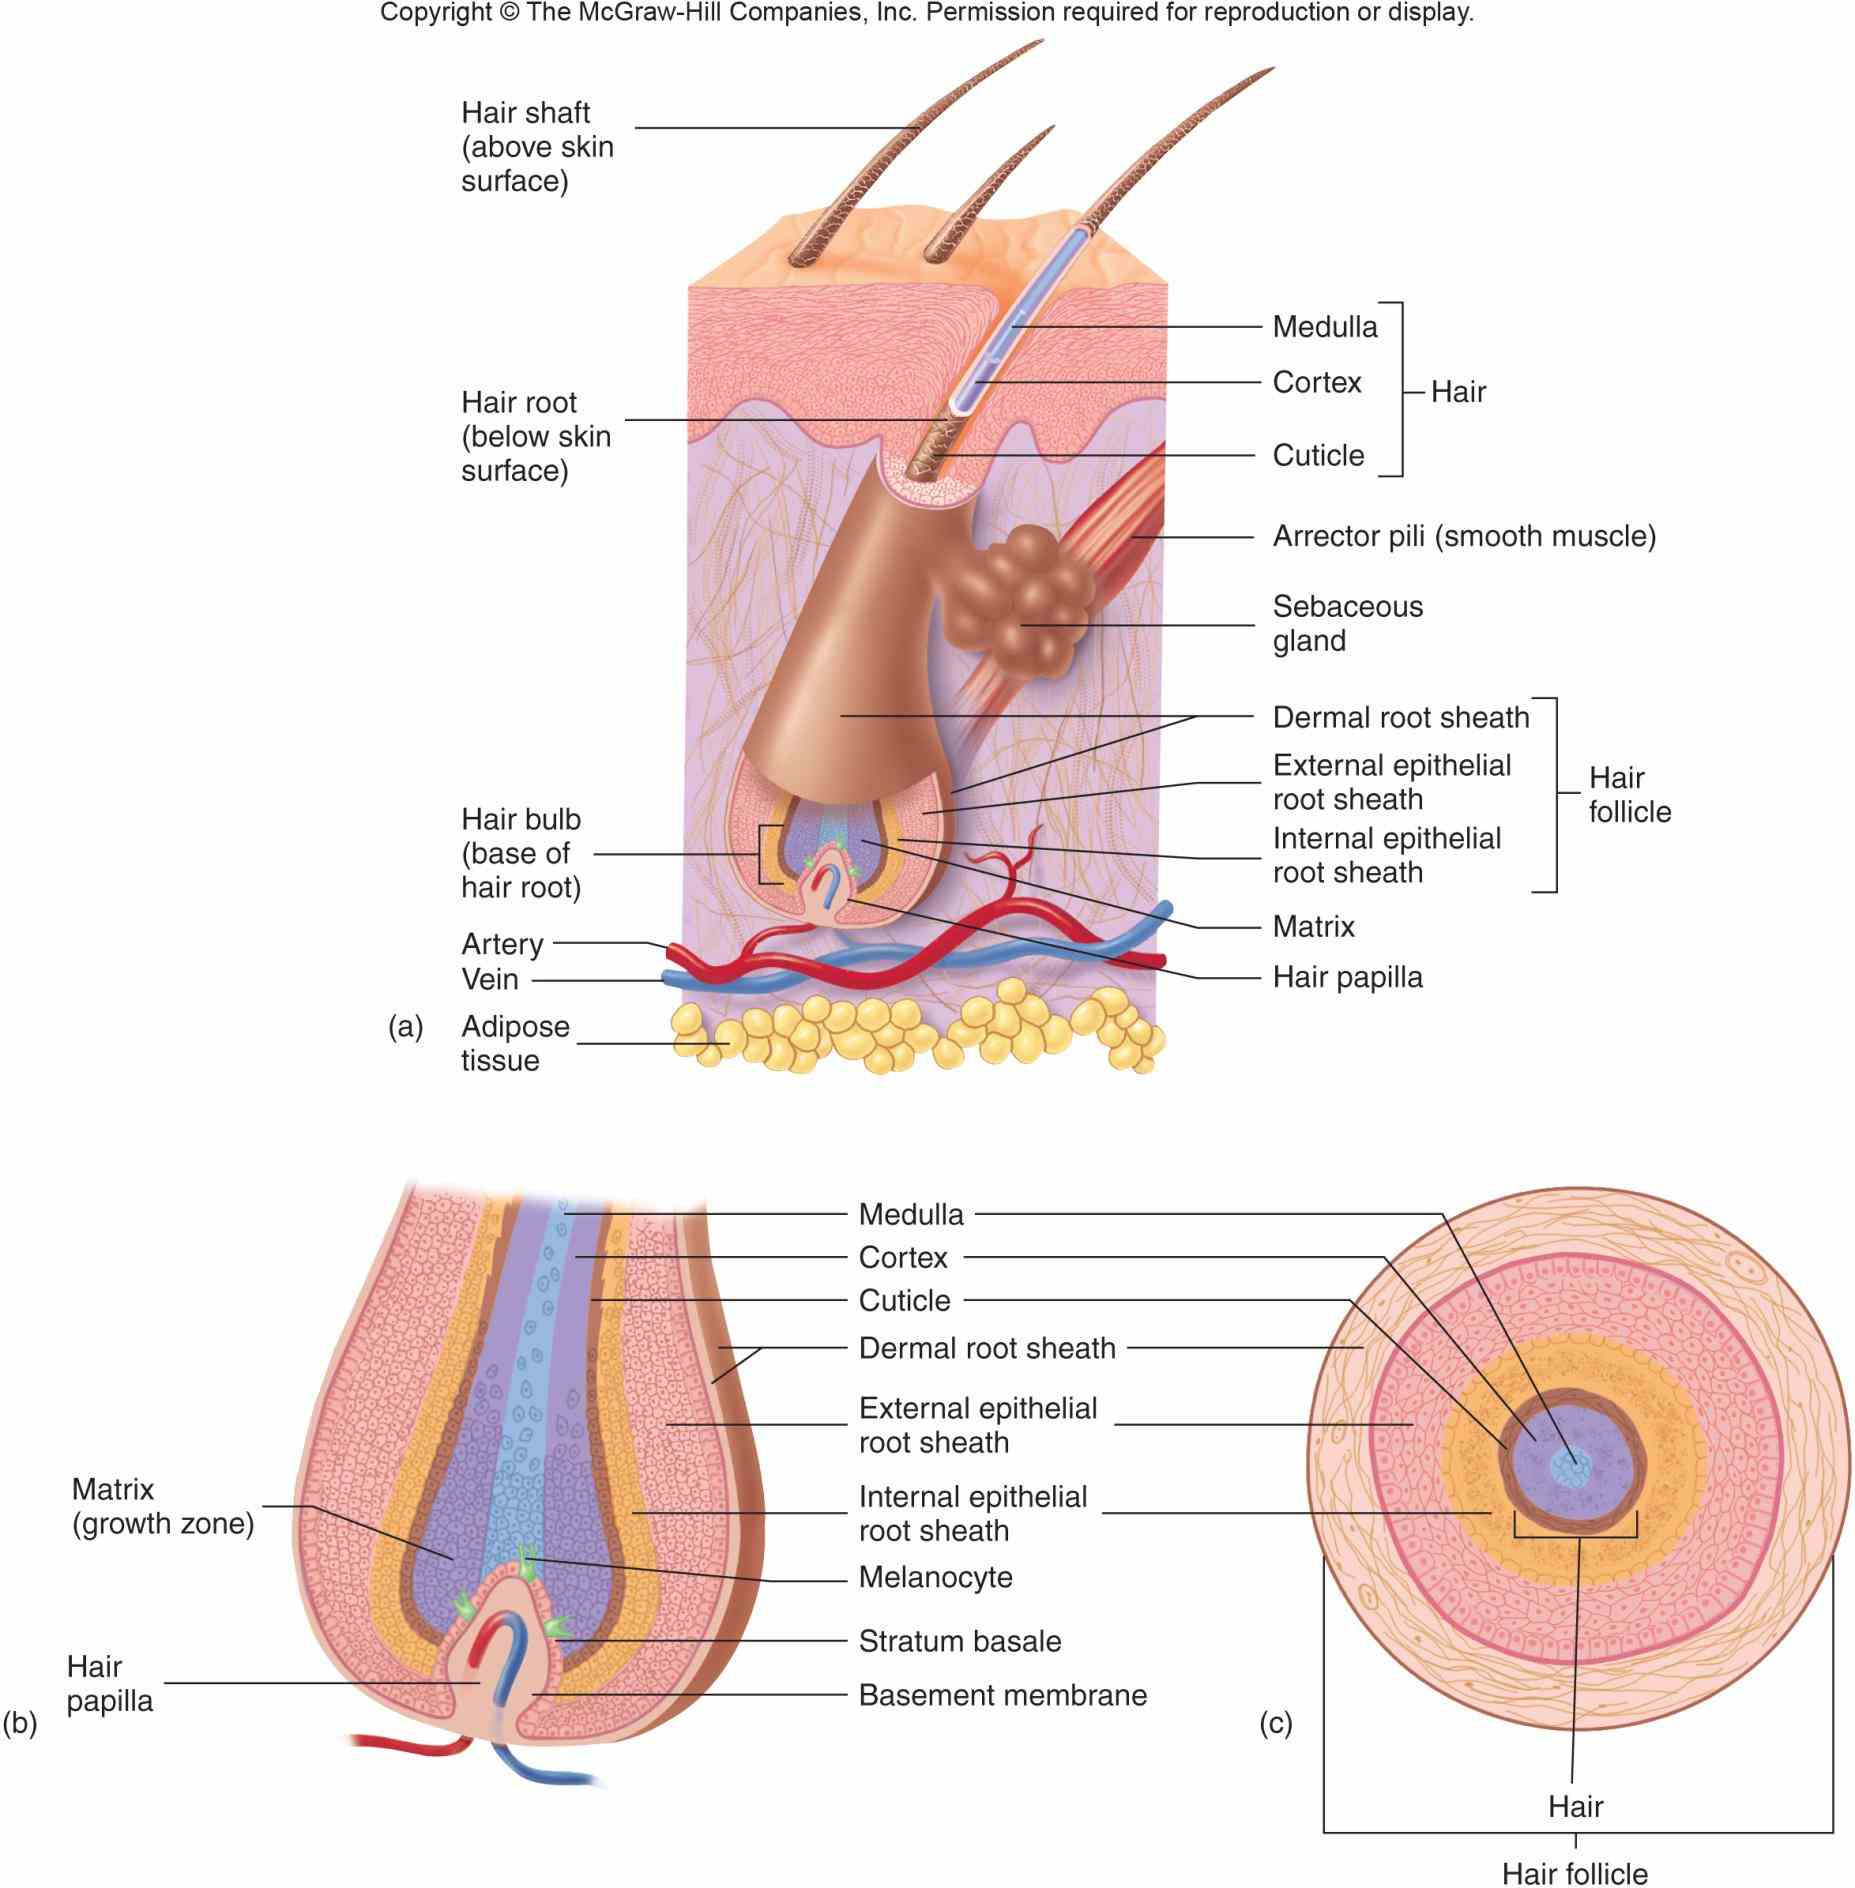 Integumentary System Parts And Functions Picture | MedicineBTG.com